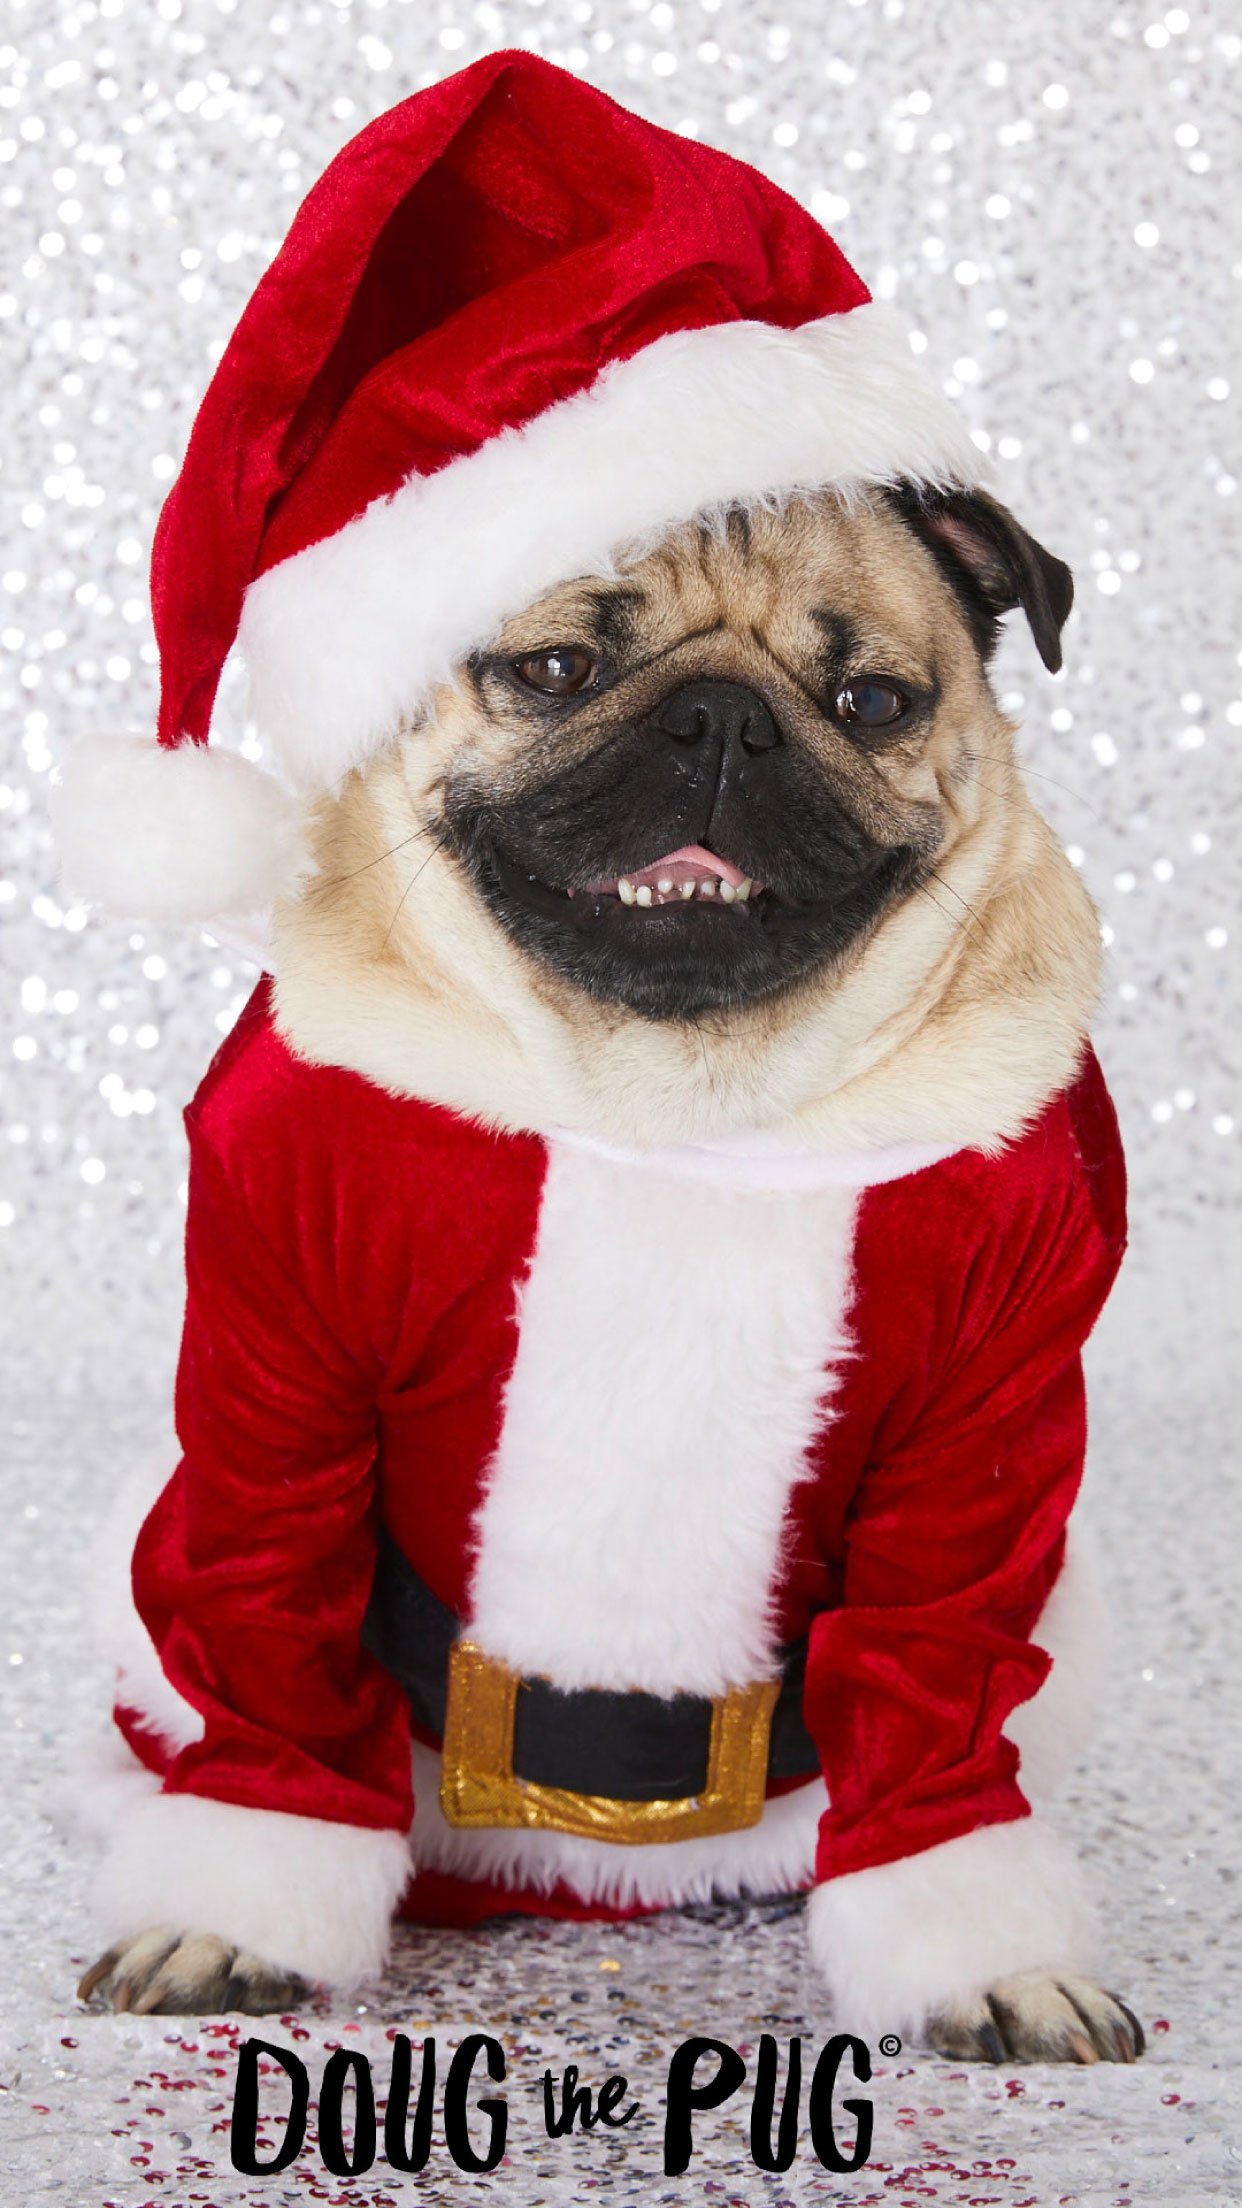 Cute Wallpapers To Download Free Free Doug The Pug Christmas Wallpapers Clairesblog